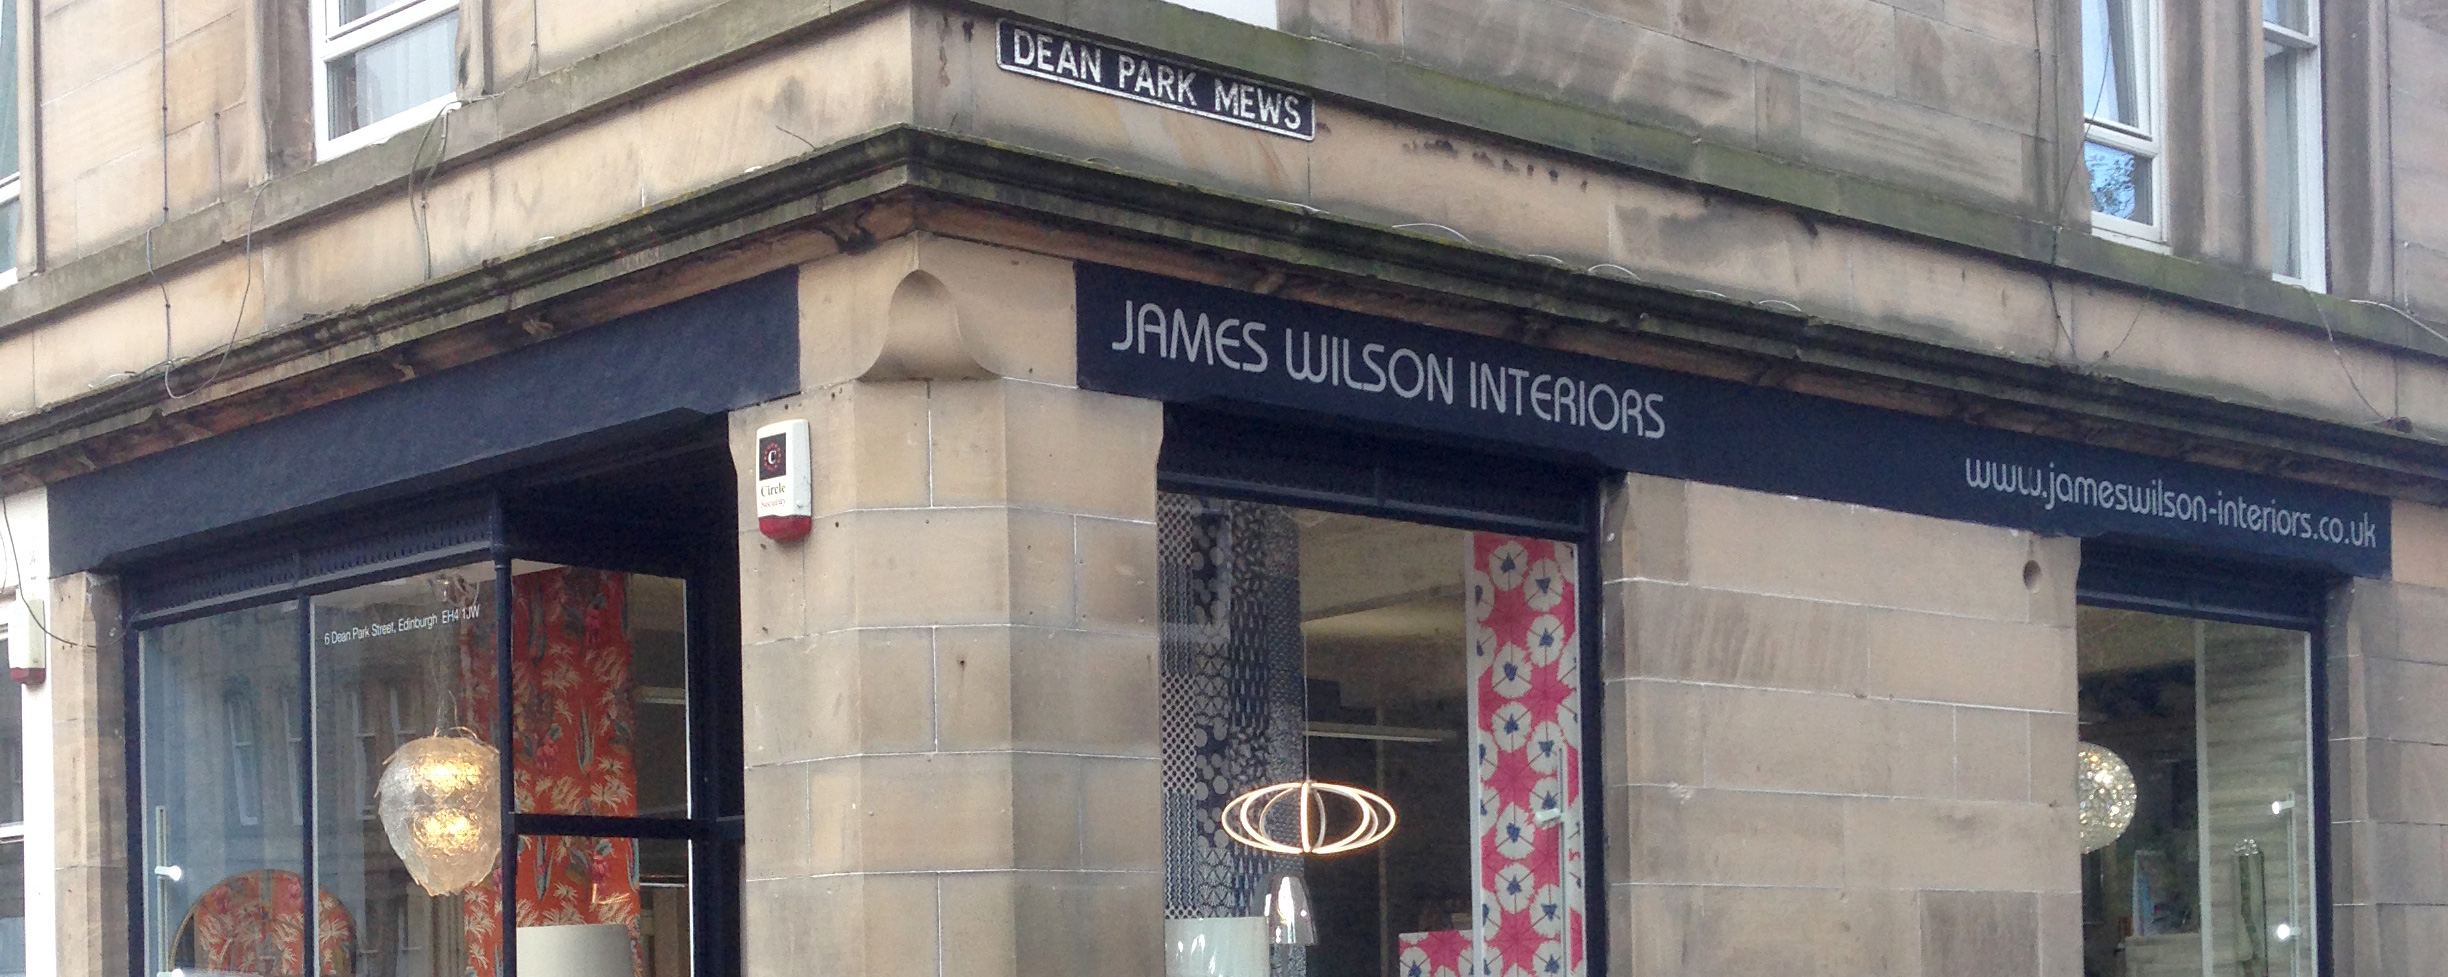 James Wilson Interiors shop